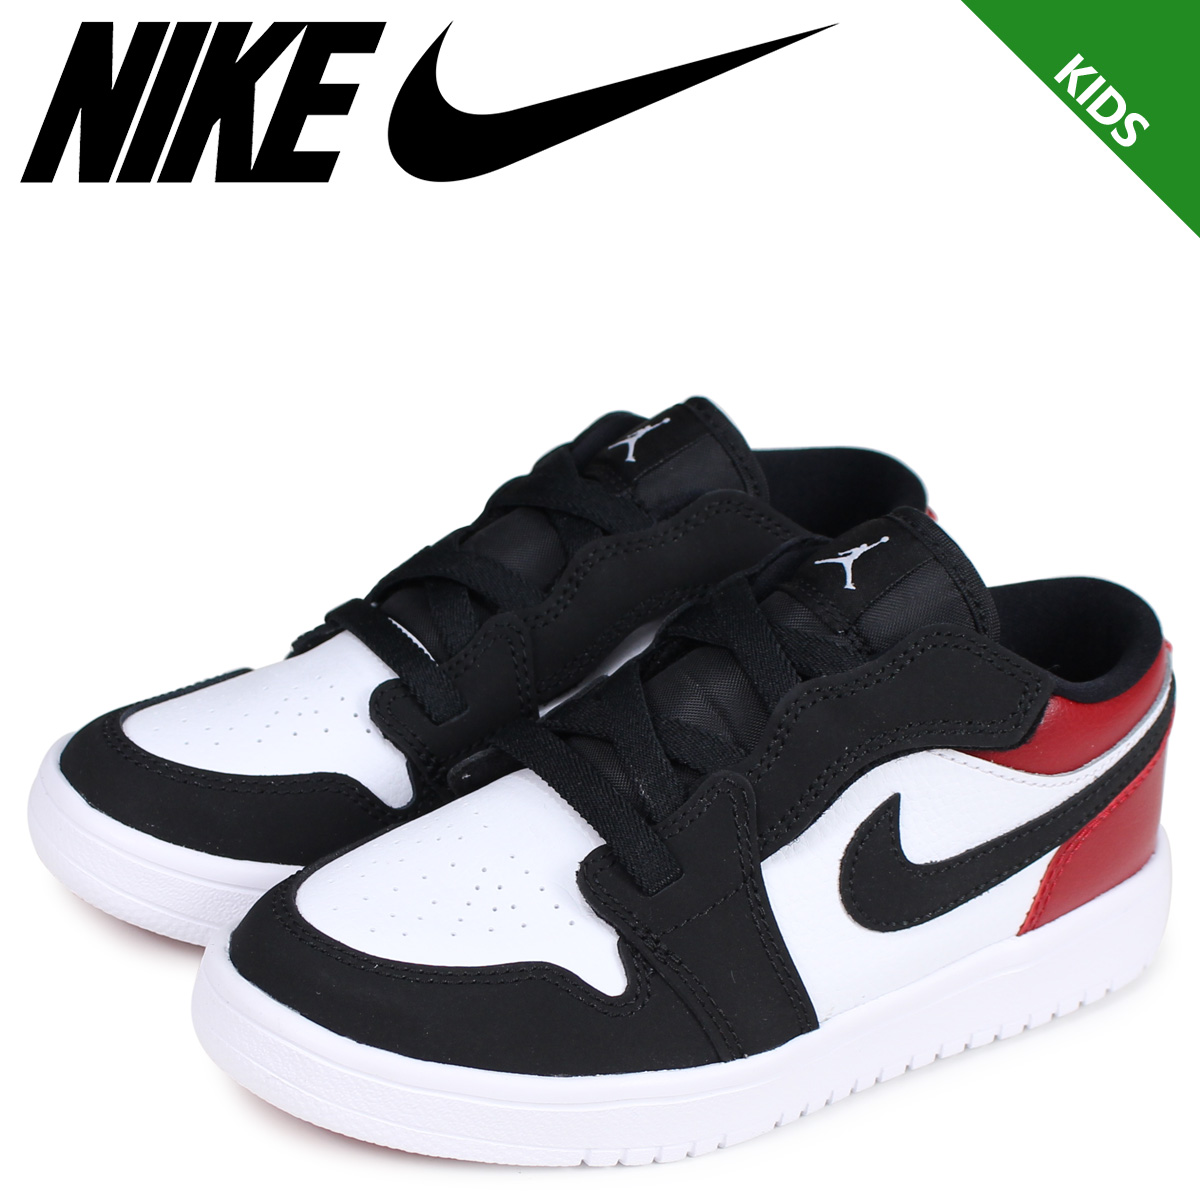 buy popular 50151 03e4b NIKE Nike Air Jordan 1 sneakers kids AIR JORDAN 1 LOW ALT PS BLACK TOE つま  black white white BQ6066-116